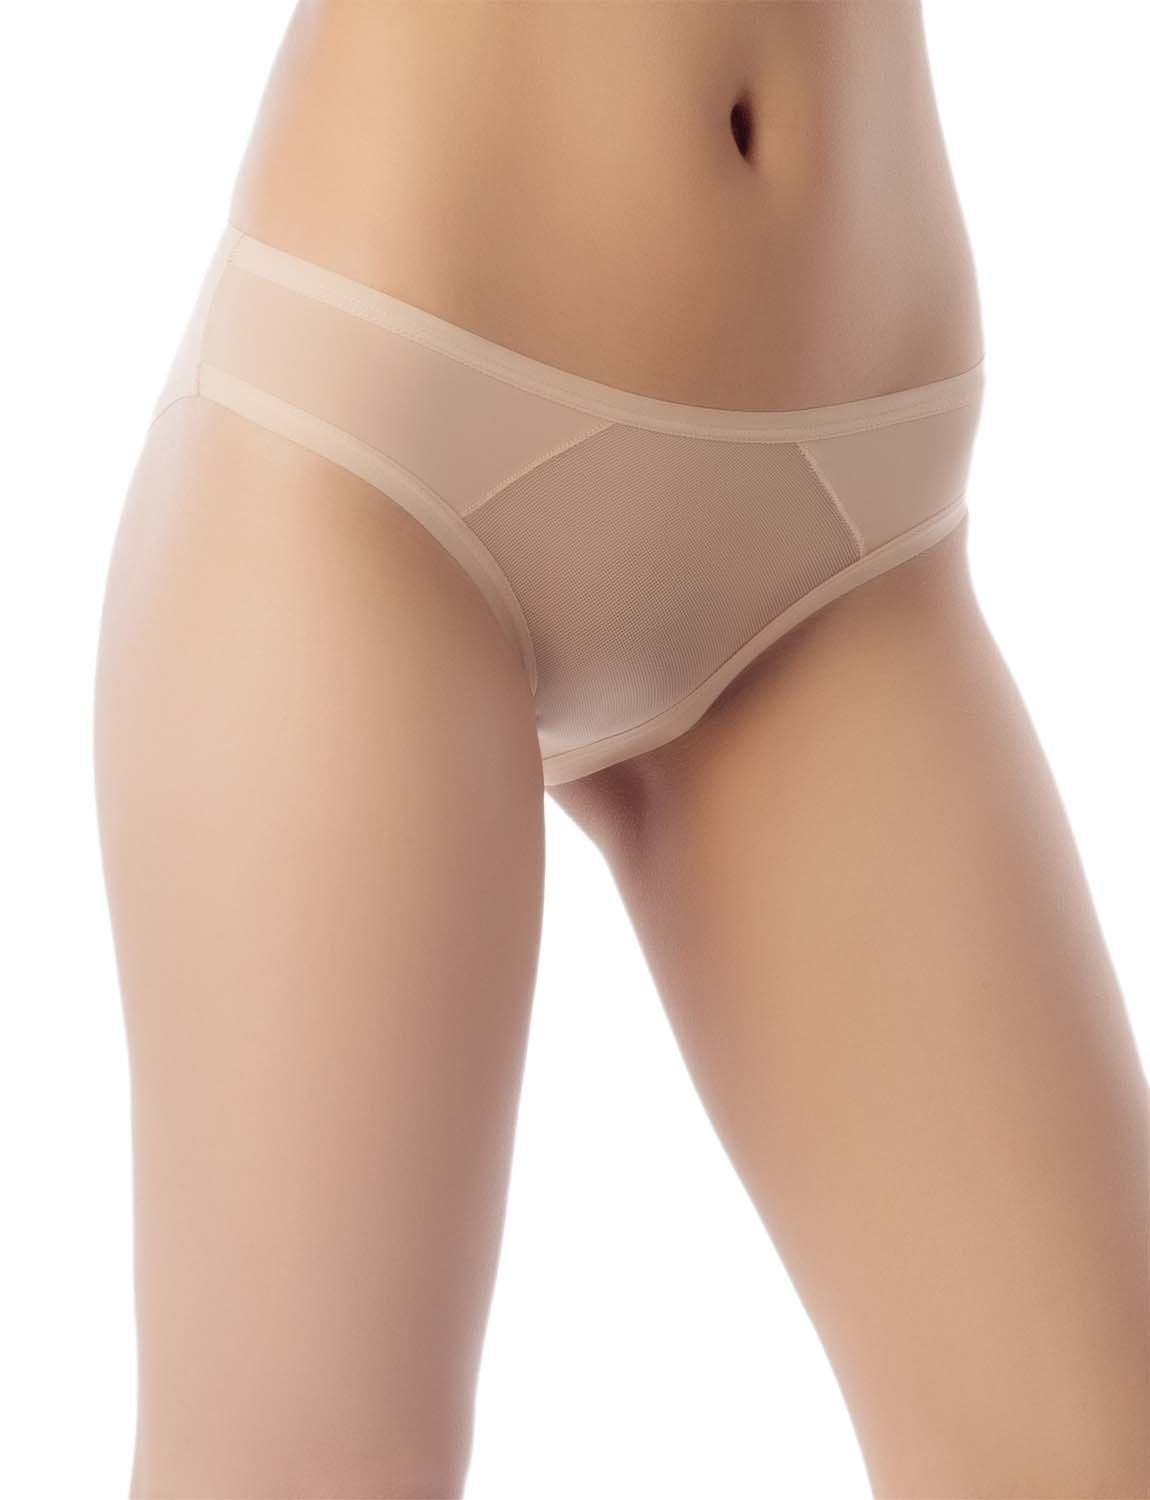 Women's Sheer See-Through Underwear Fashionable Mesh Low Rise Brief Panty, Size: M, Beige